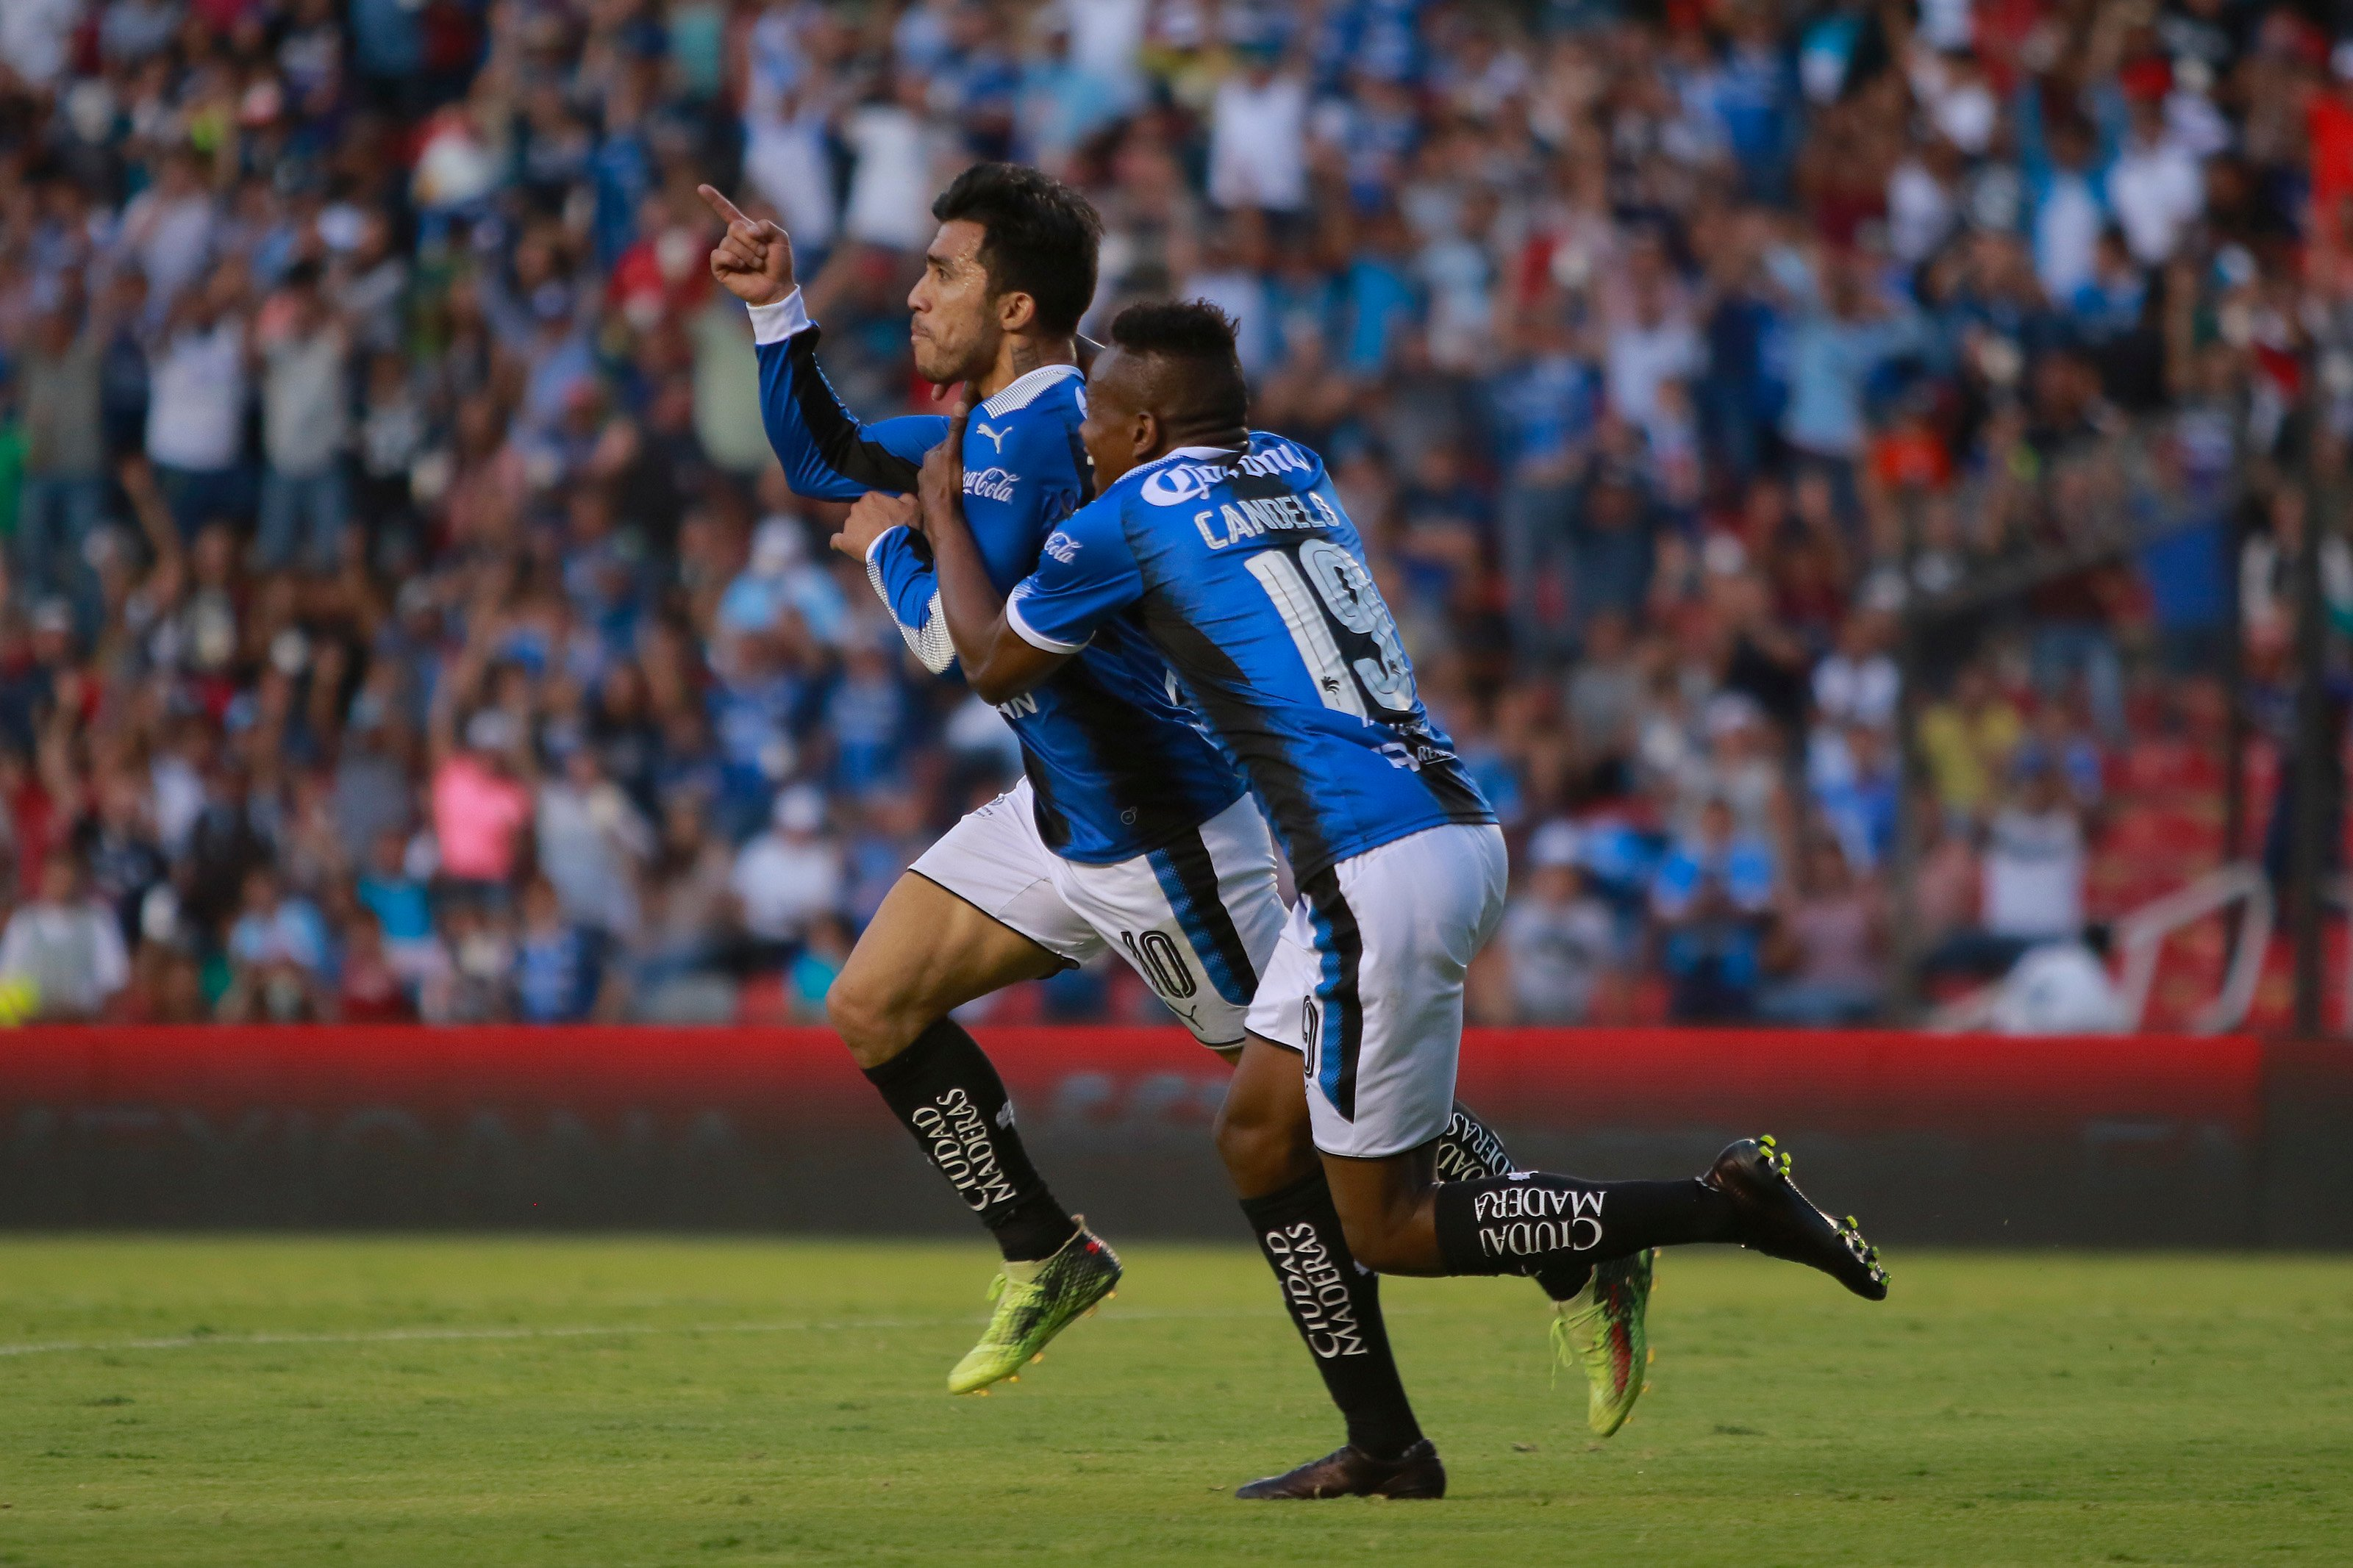 Gallos consigue su primera victoria de la temporada como local